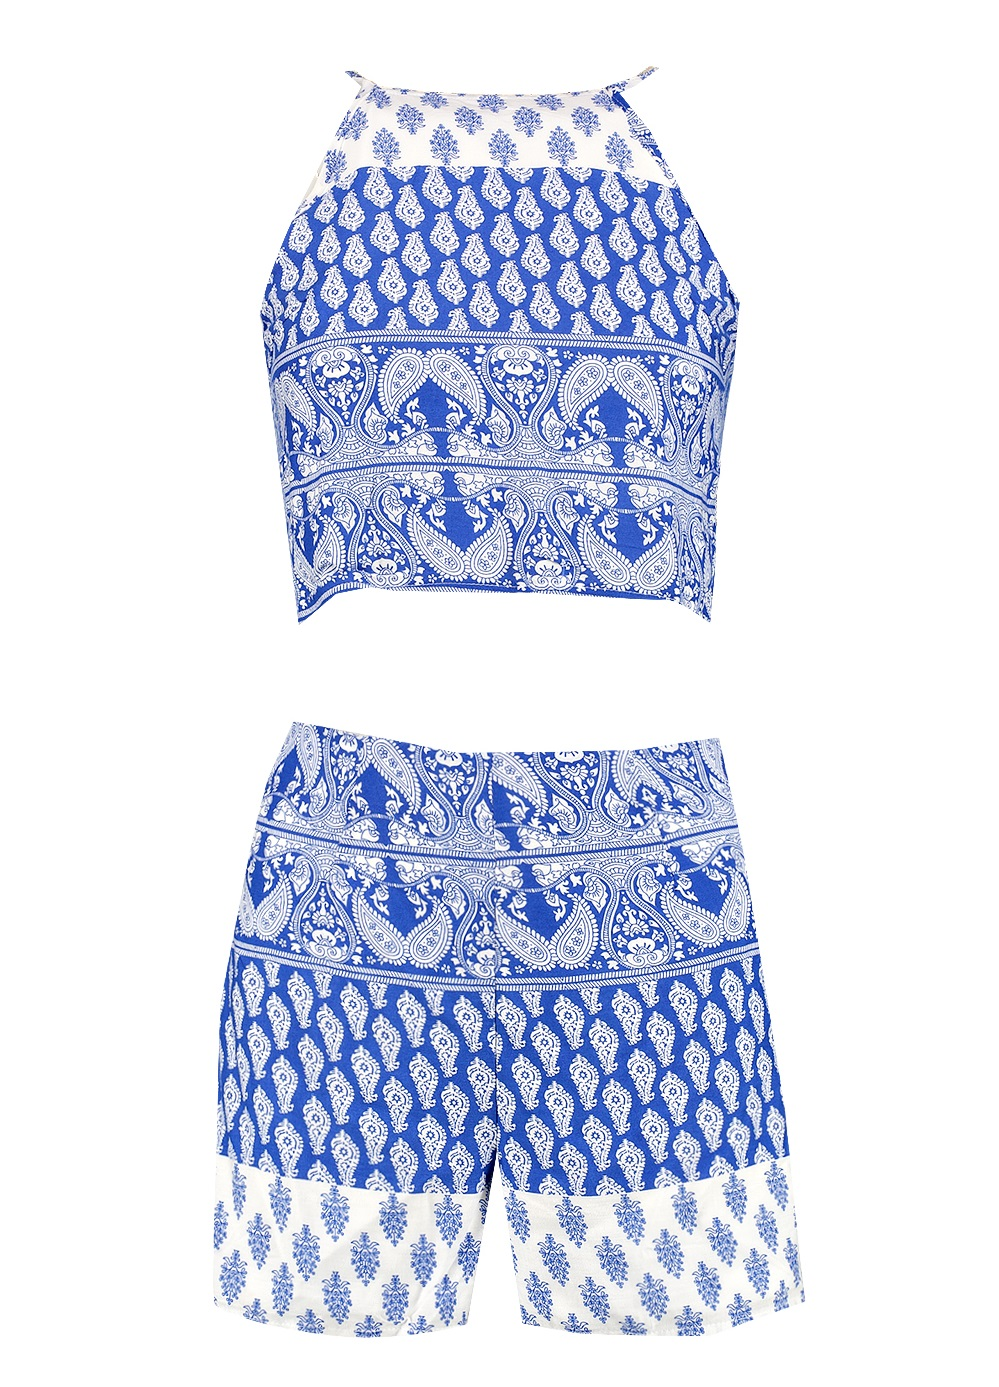 Polly blue paisley print shorts co-ord set